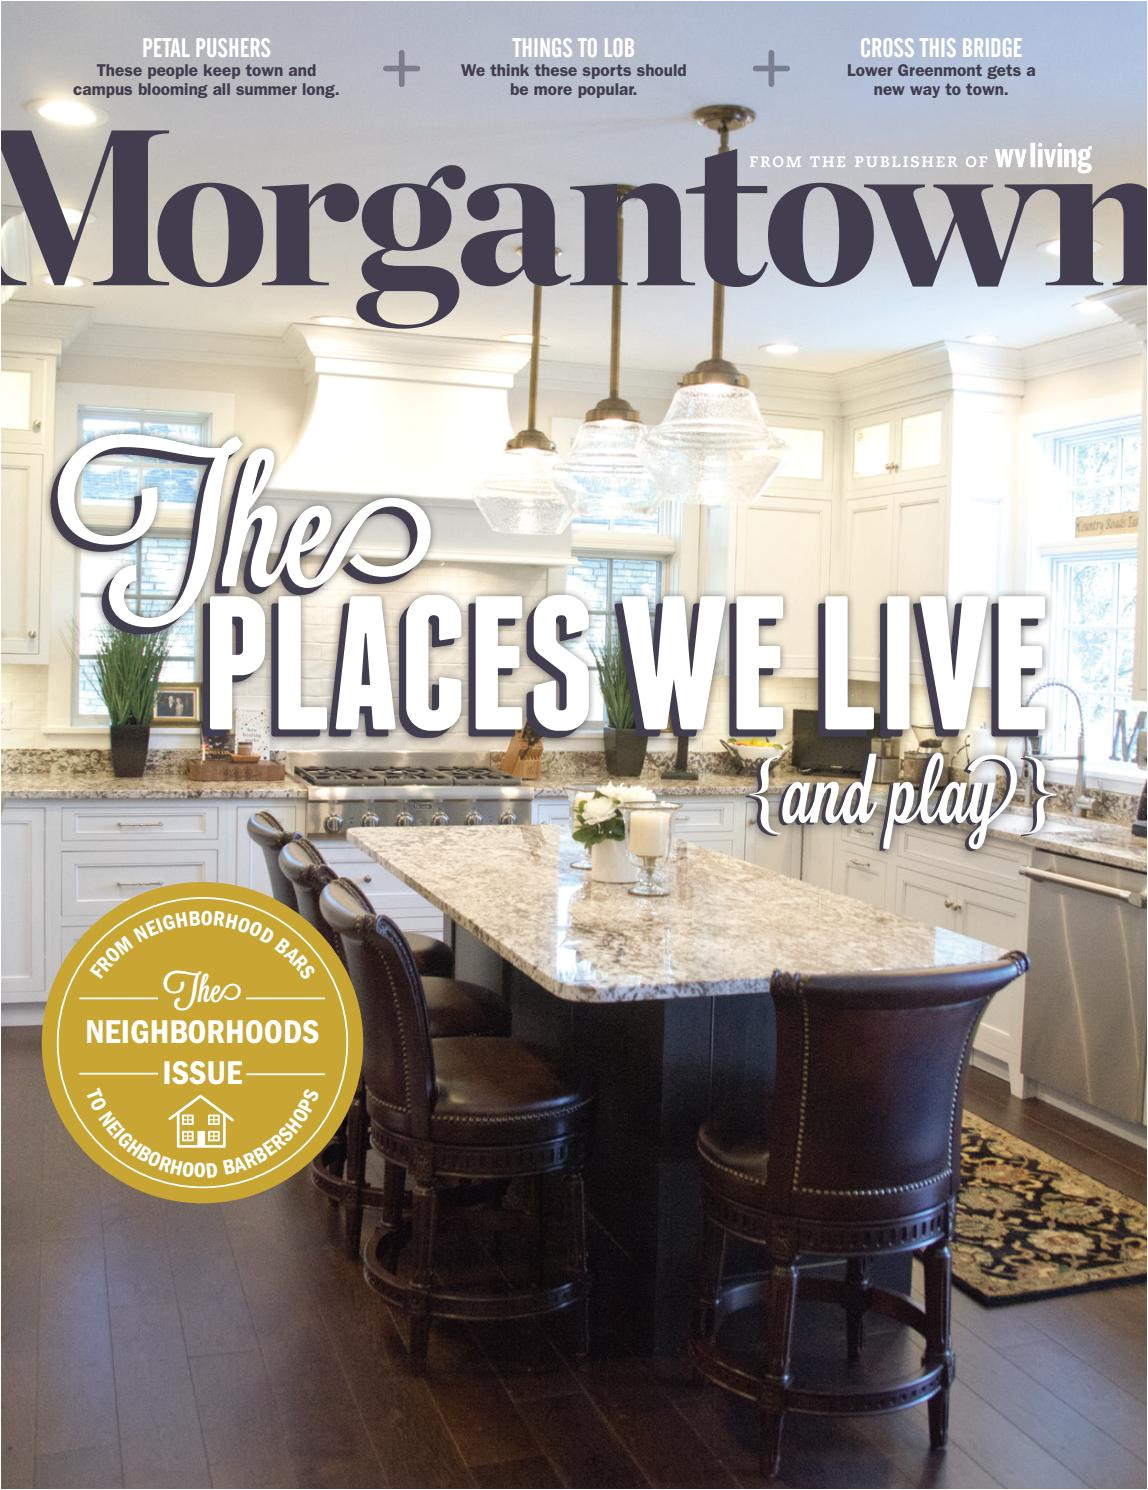 Discount Furniture Stores Morgantown Wv Motown Magazine April May 2018 by Morgantown Magazine issuu